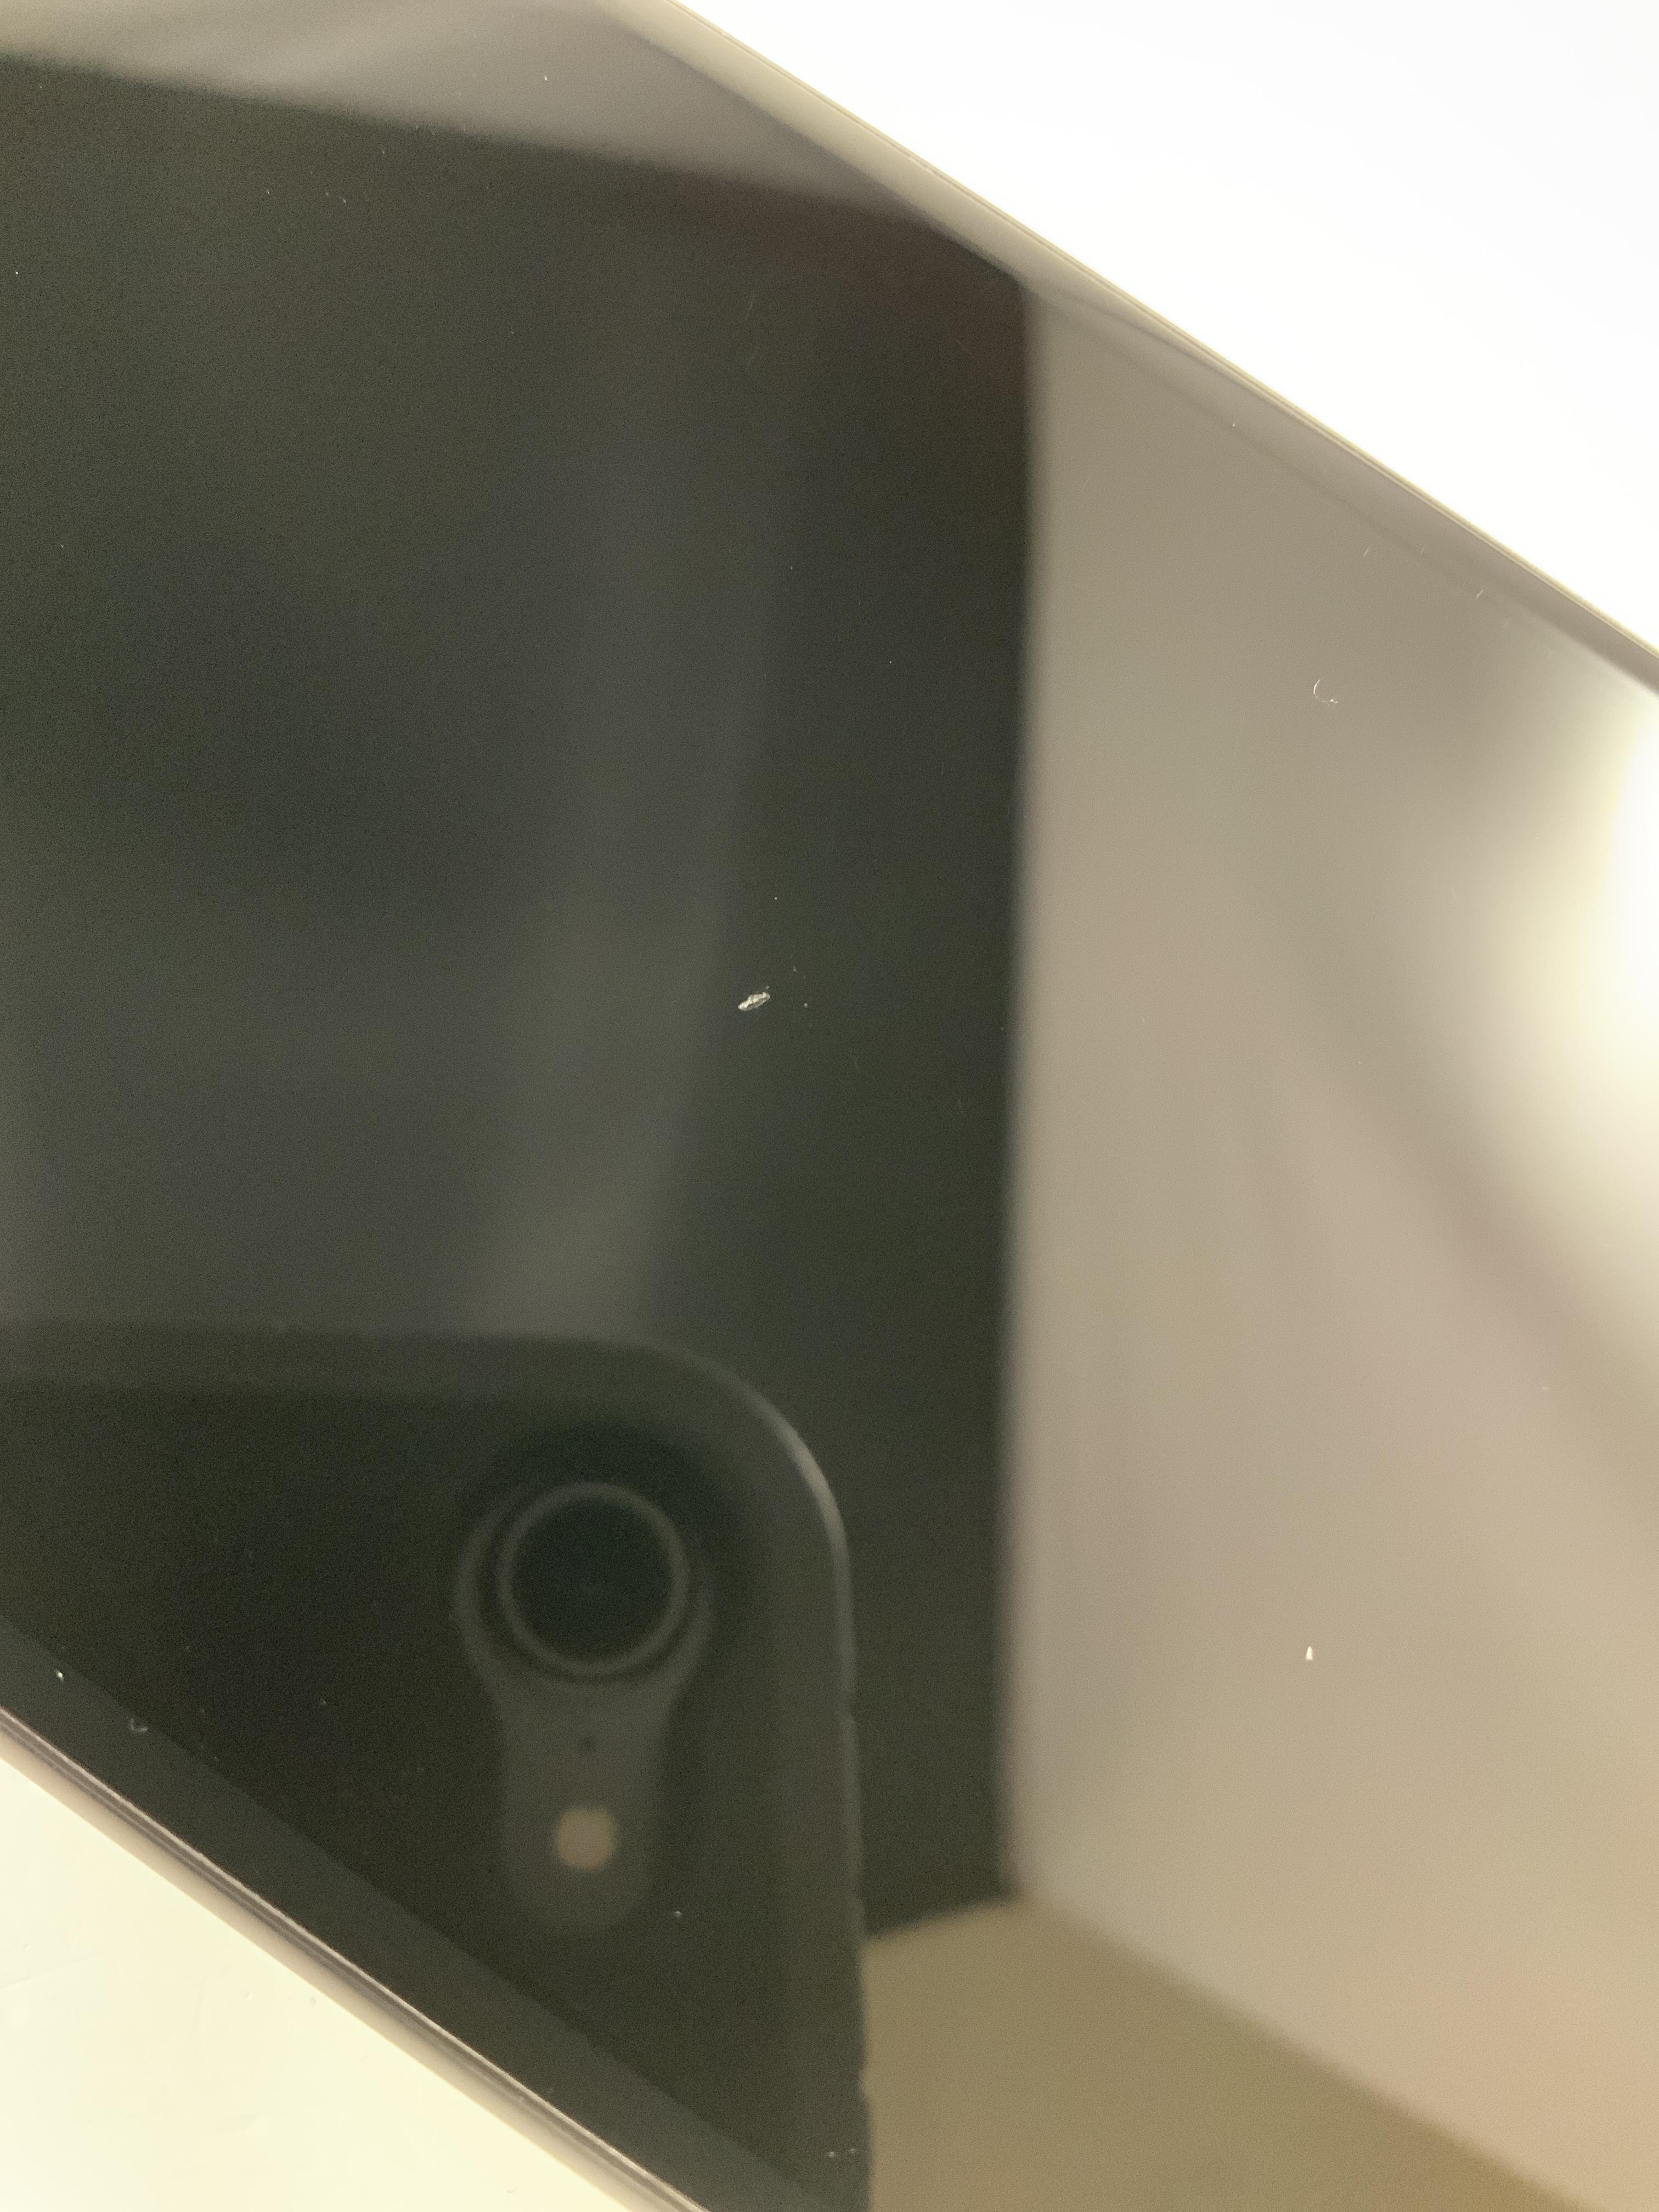 iPhone 8 64GB, 64GB, Space Gray, immagine 4